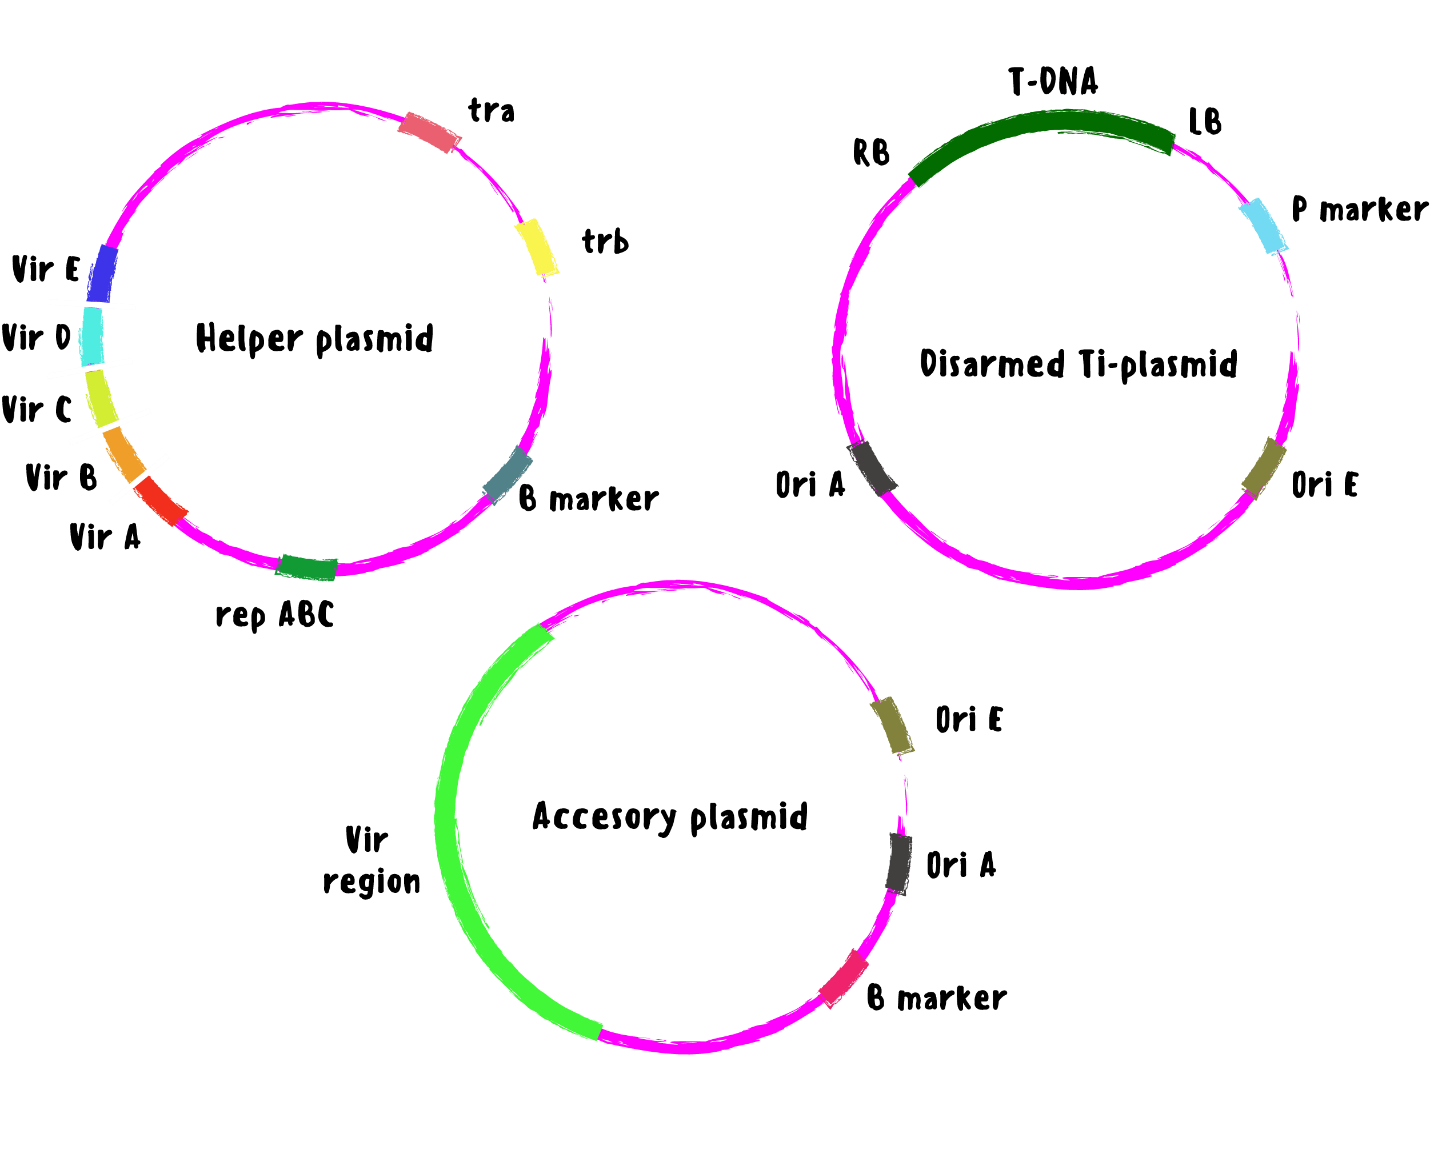 Illustration of the Trenary Vector for agrobacterium-mediated gene transfer. This vector system includes 3 plasmids - a helper plasmid, a disarmed TI plasmid and an accessory plasmid